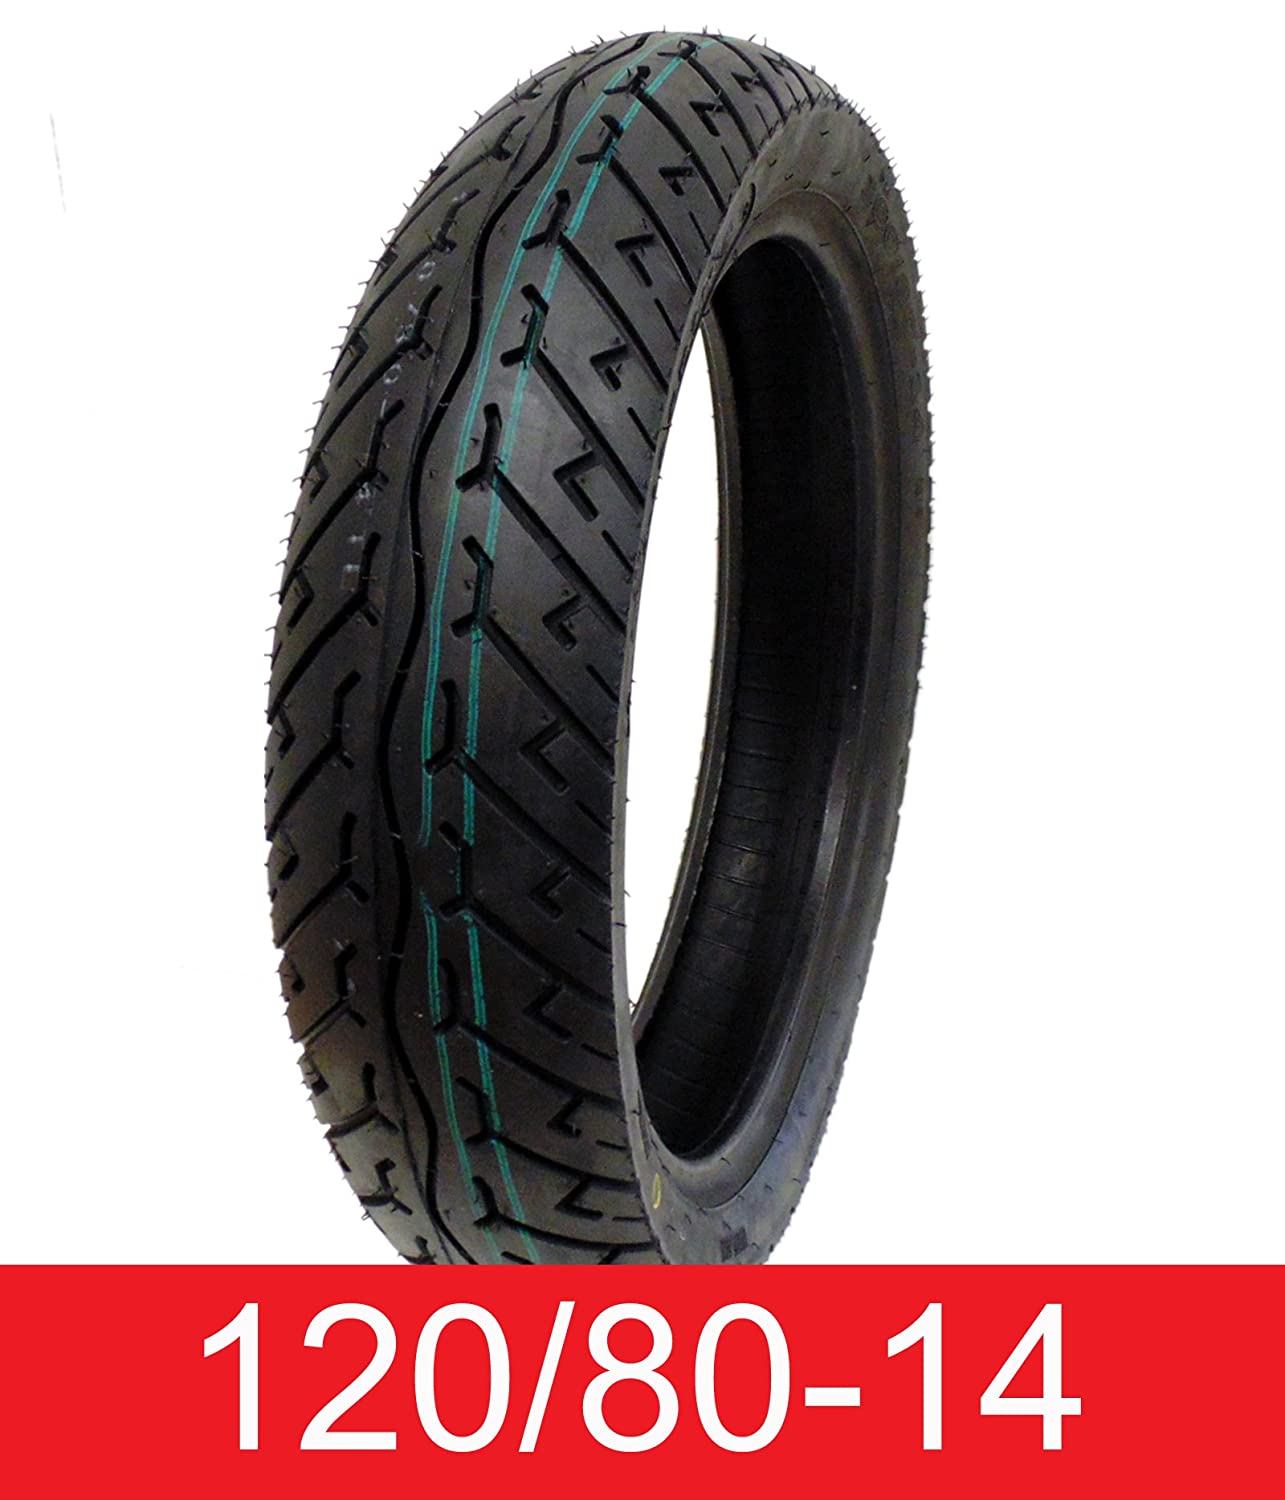 Tire 120 80 14 Tubeless Front Rear Motorcycle Scooter 110 Velg Moped Automotive